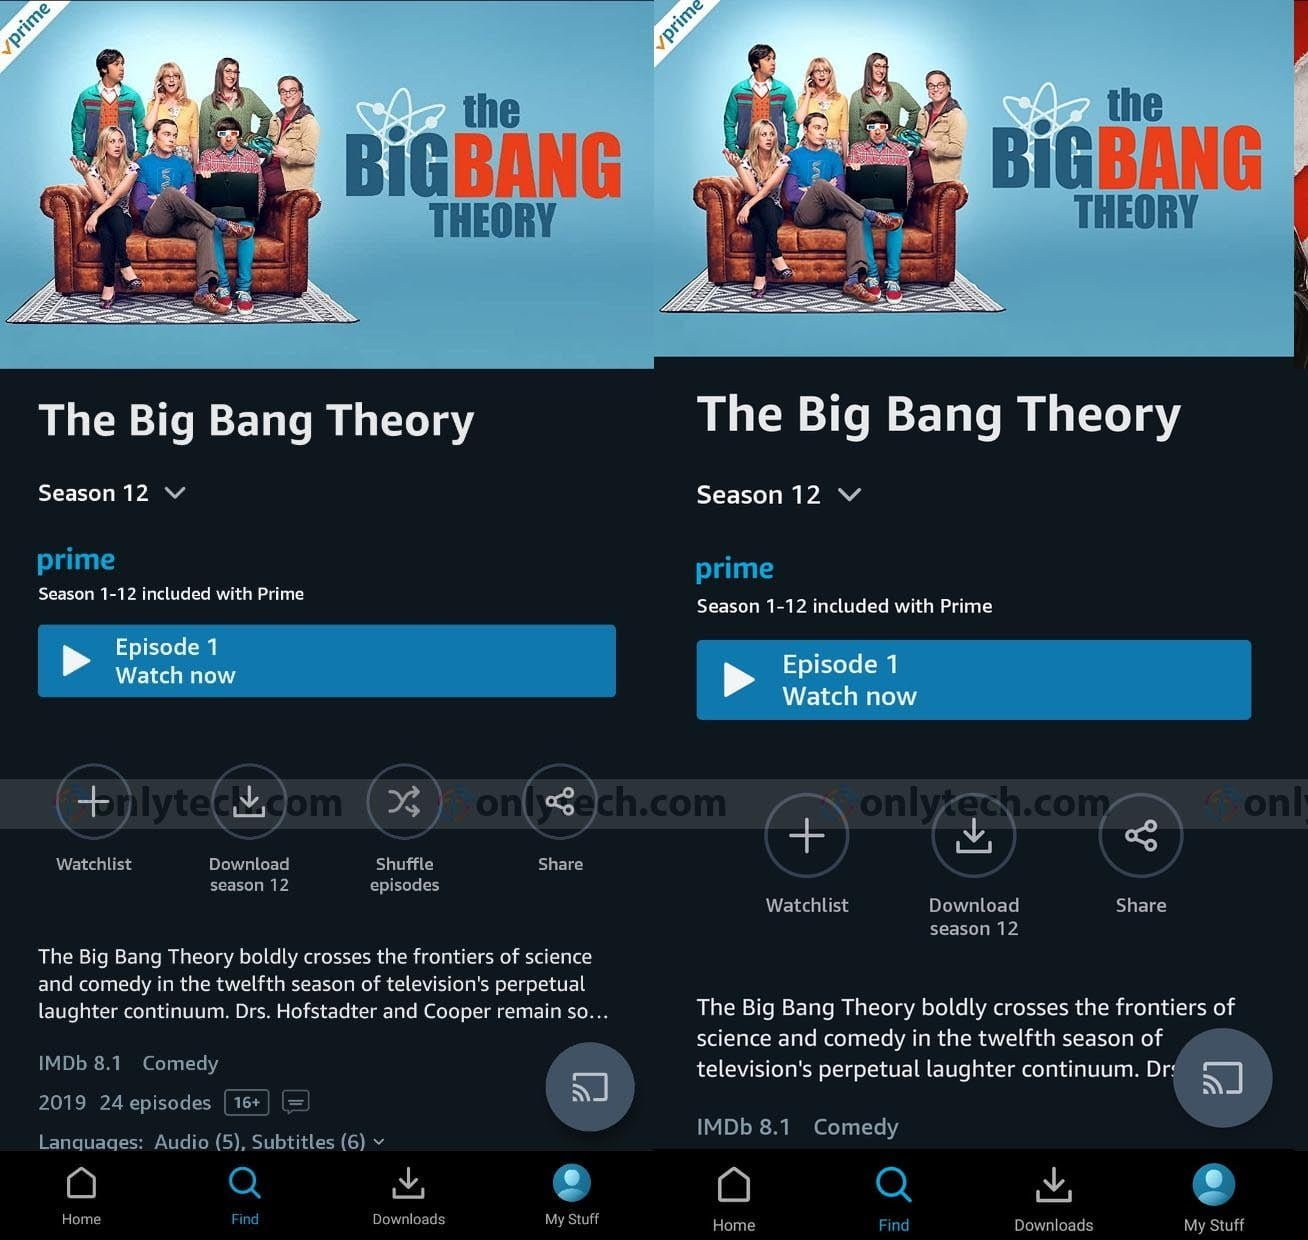 Amazon Prime Video is testing an episodic shuffle option for sitcoms